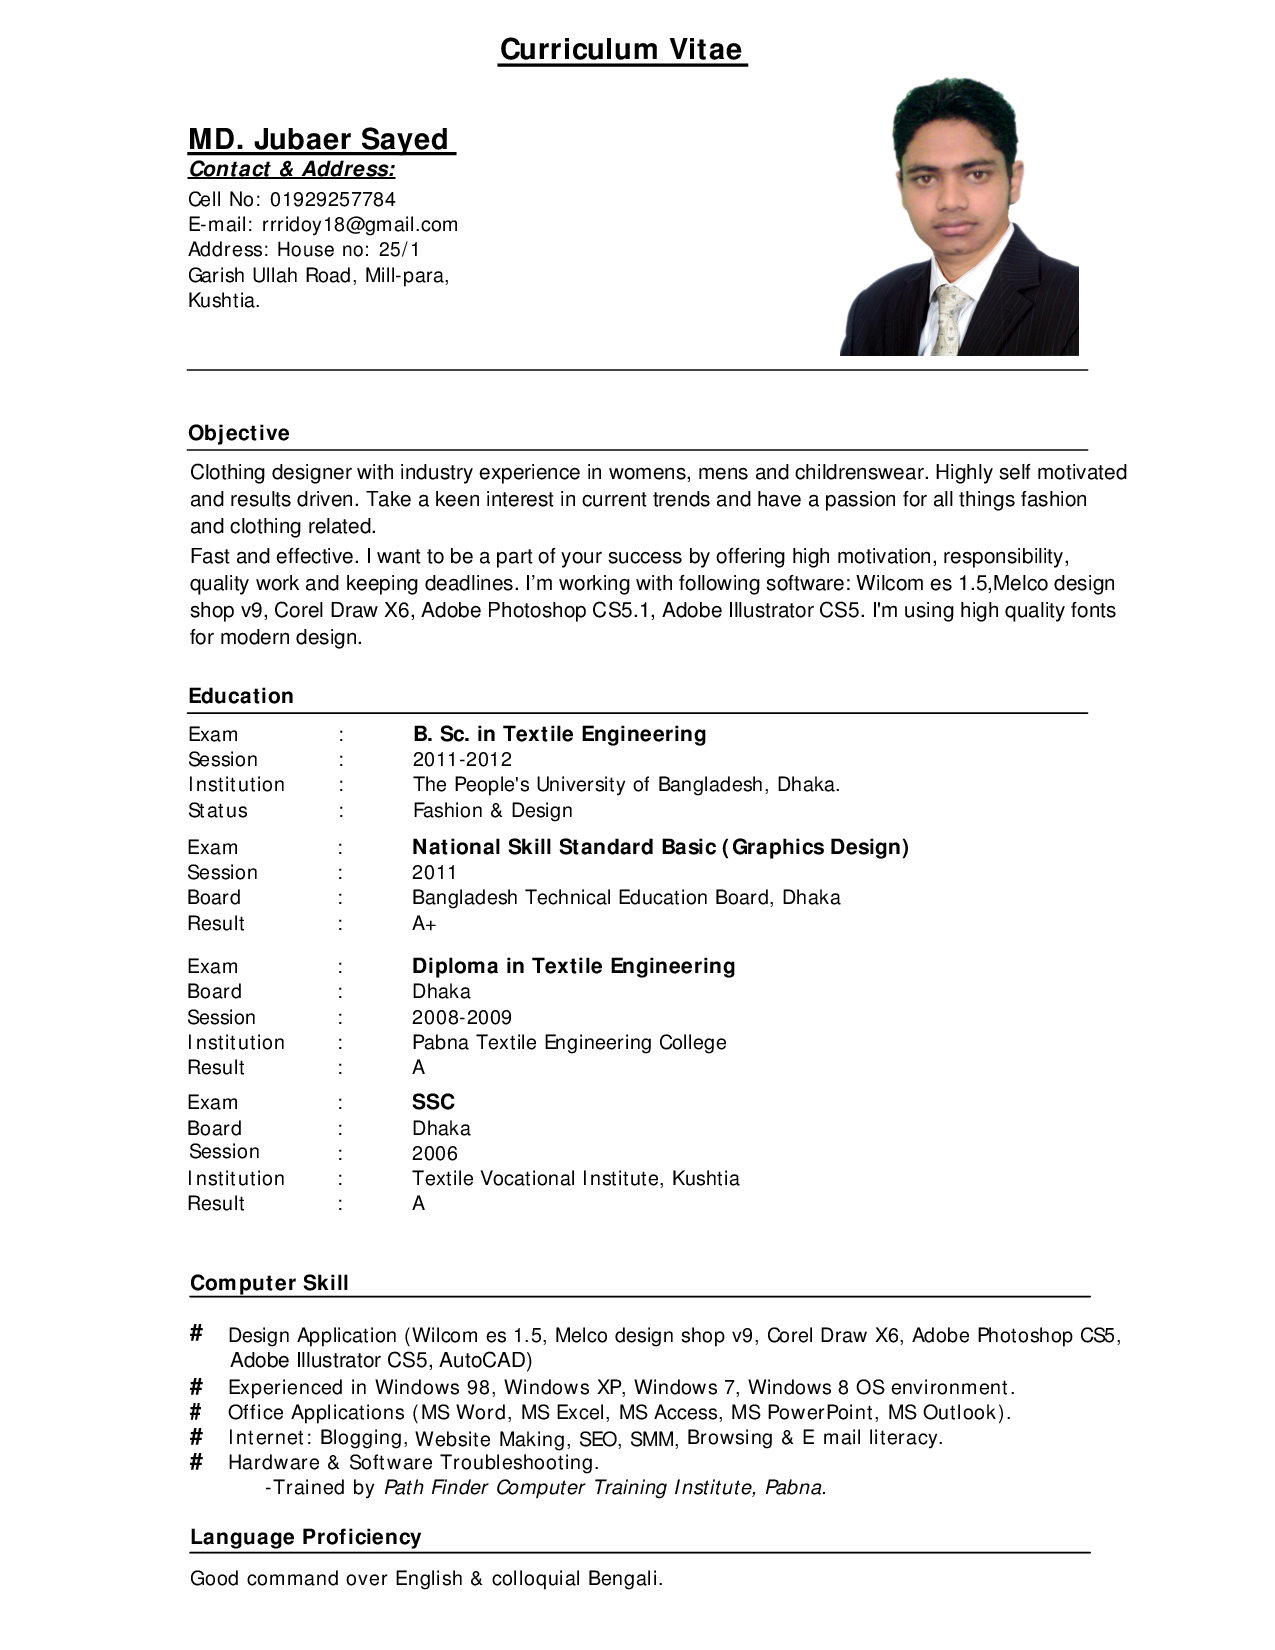 Resume template for job application resume sample job resume cv resume service that an expert resume writer dedicated to serving your resume writing needs the best resume company on the net with clients worldwide falaconquin